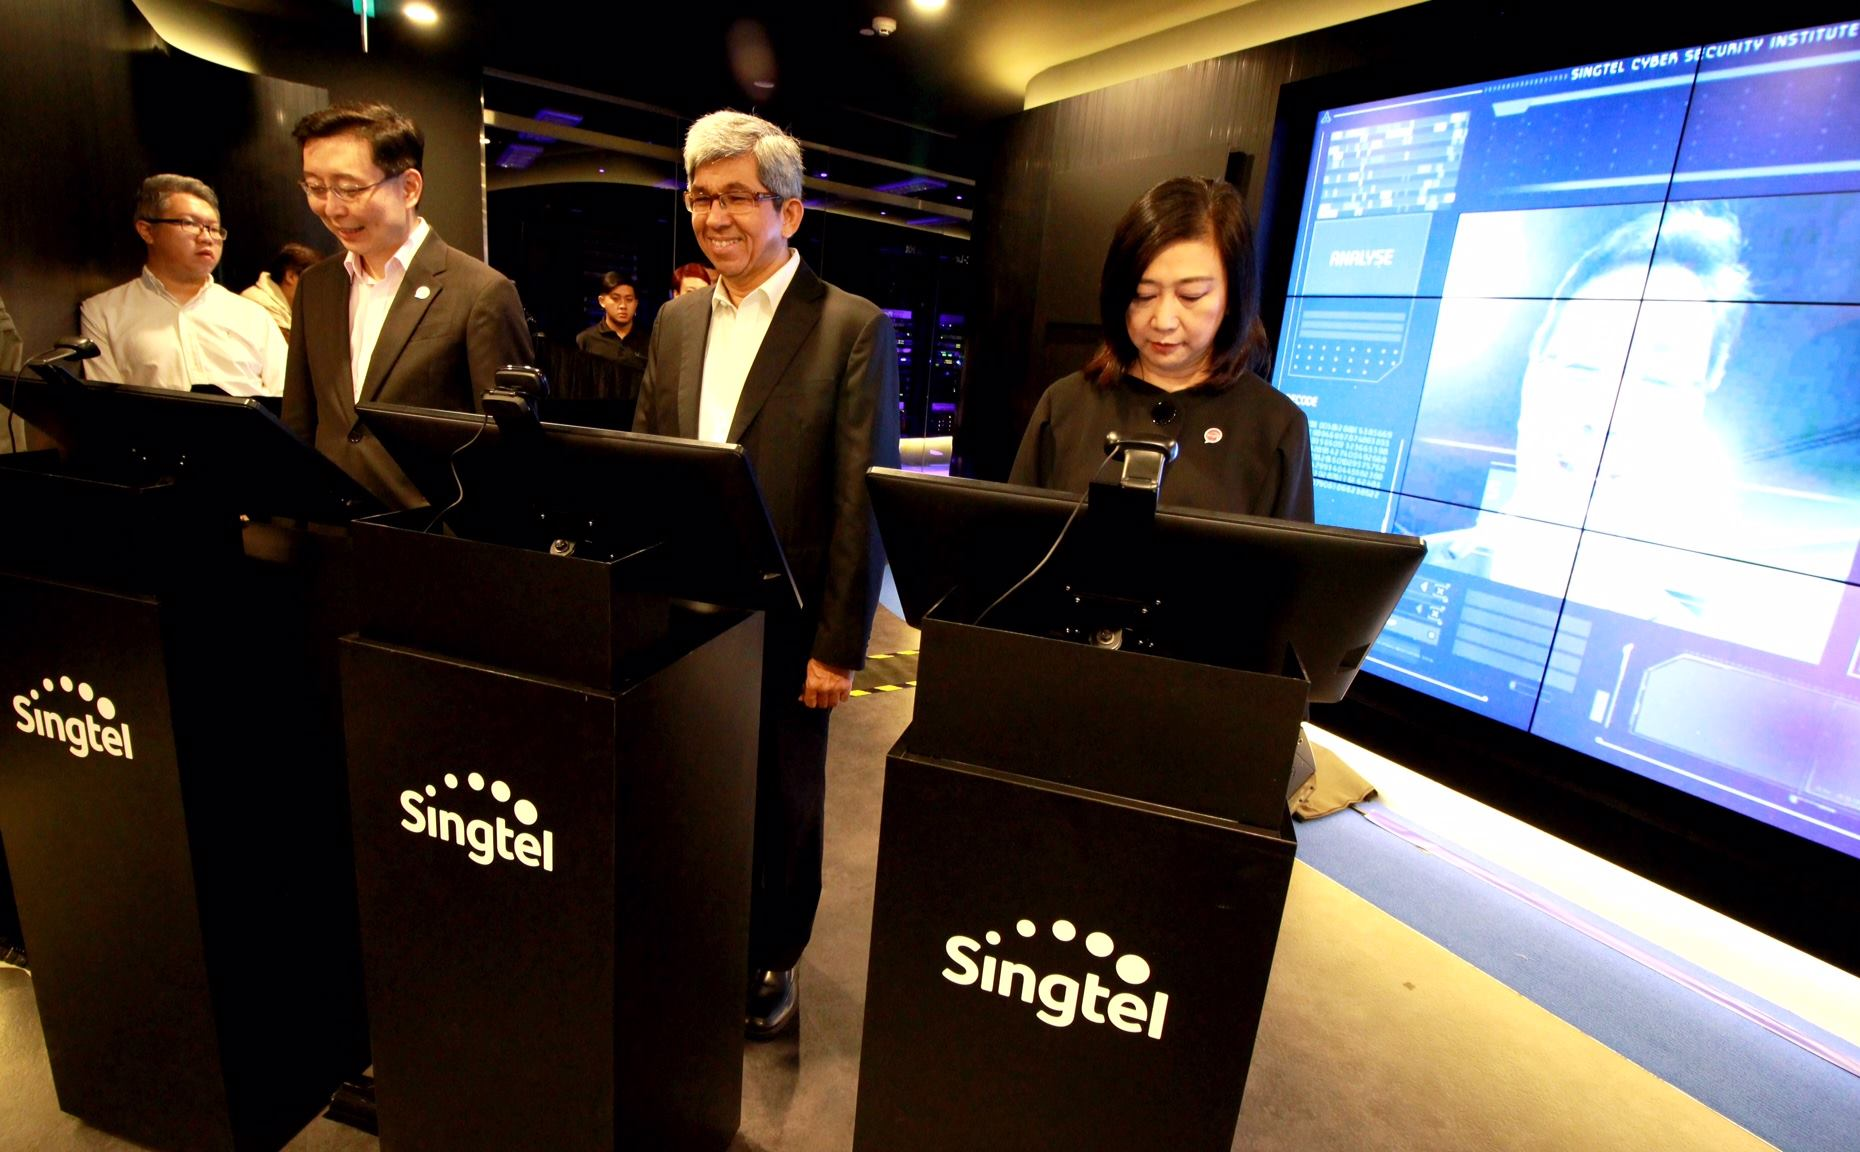 Launch of Singtel Cyber Security Institute using a biometric facial recognition system